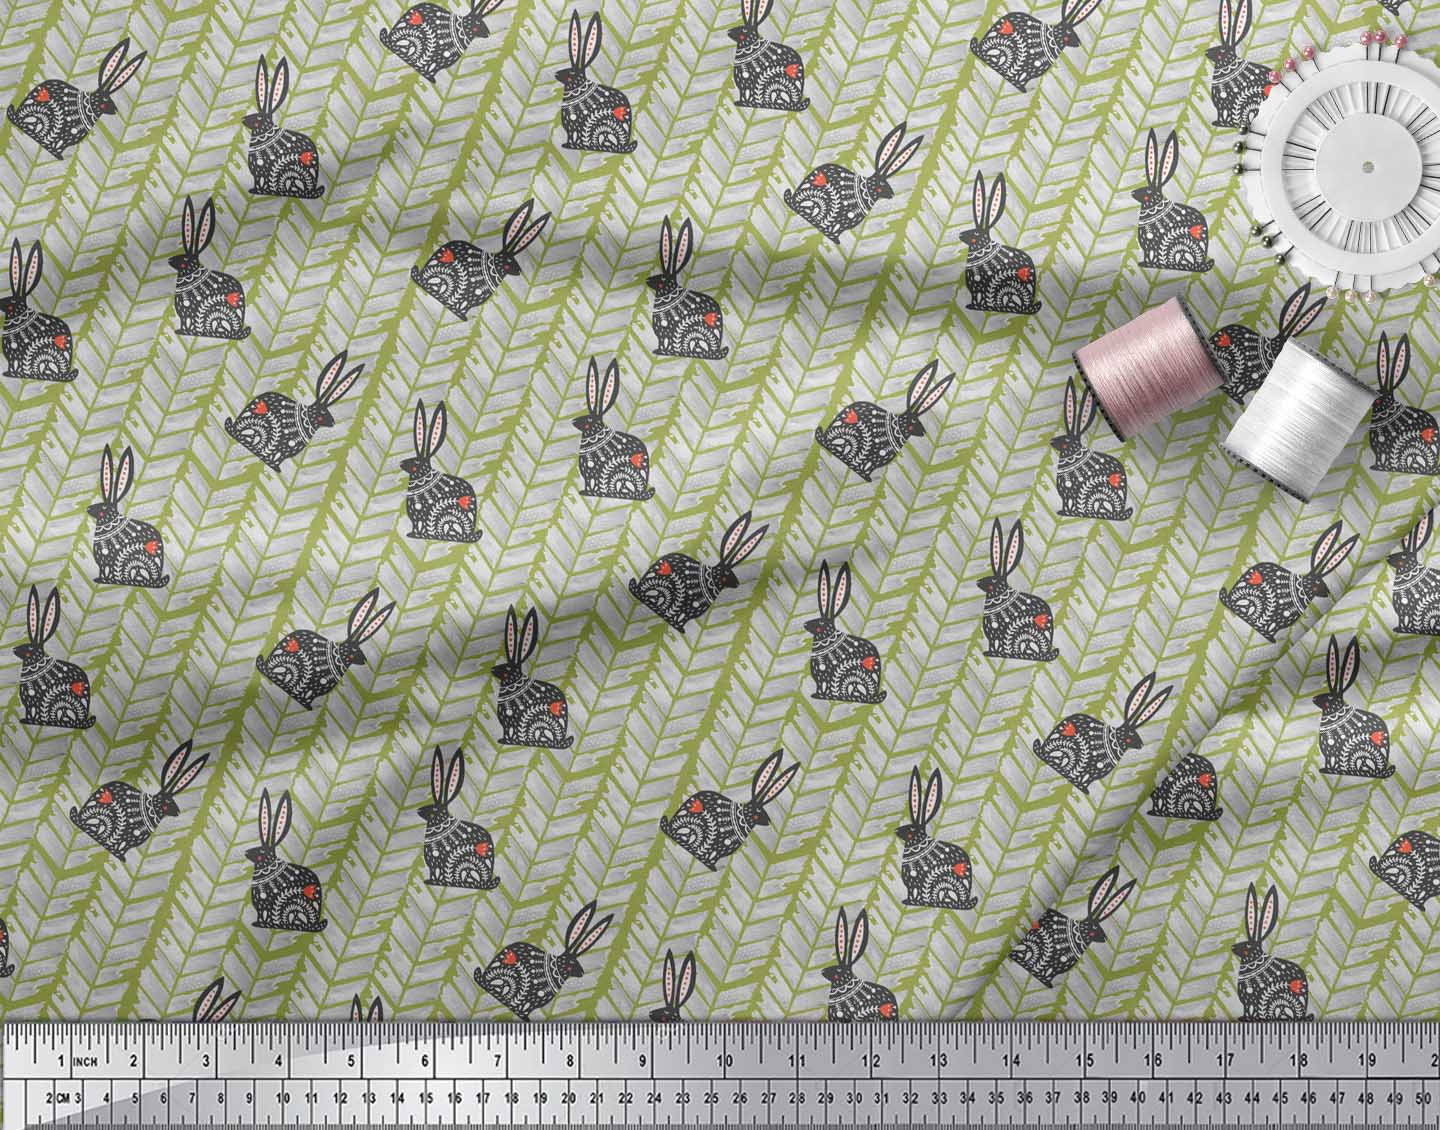 Soimoi-Green-Cotton-Poplin-Fabric-Chevron-amp-Rabbit-Folk-Art-Fabric-jv8 thumbnail 3